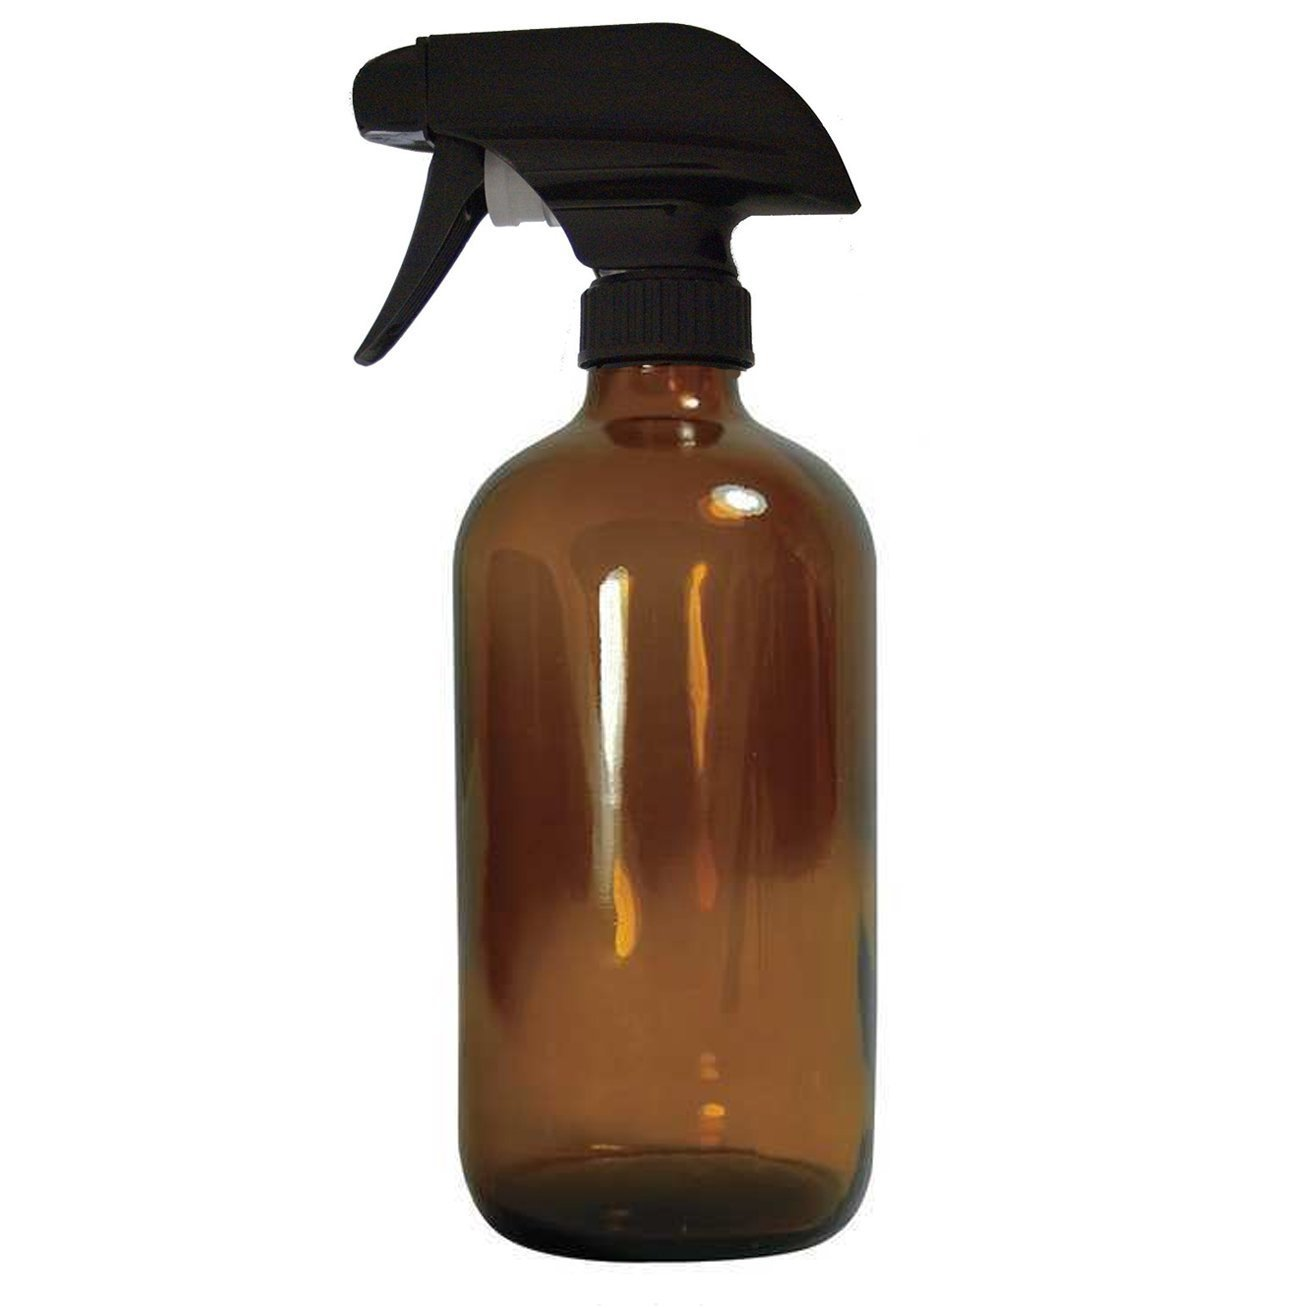 16 Oz Empty Amber Glass Spray Bottle